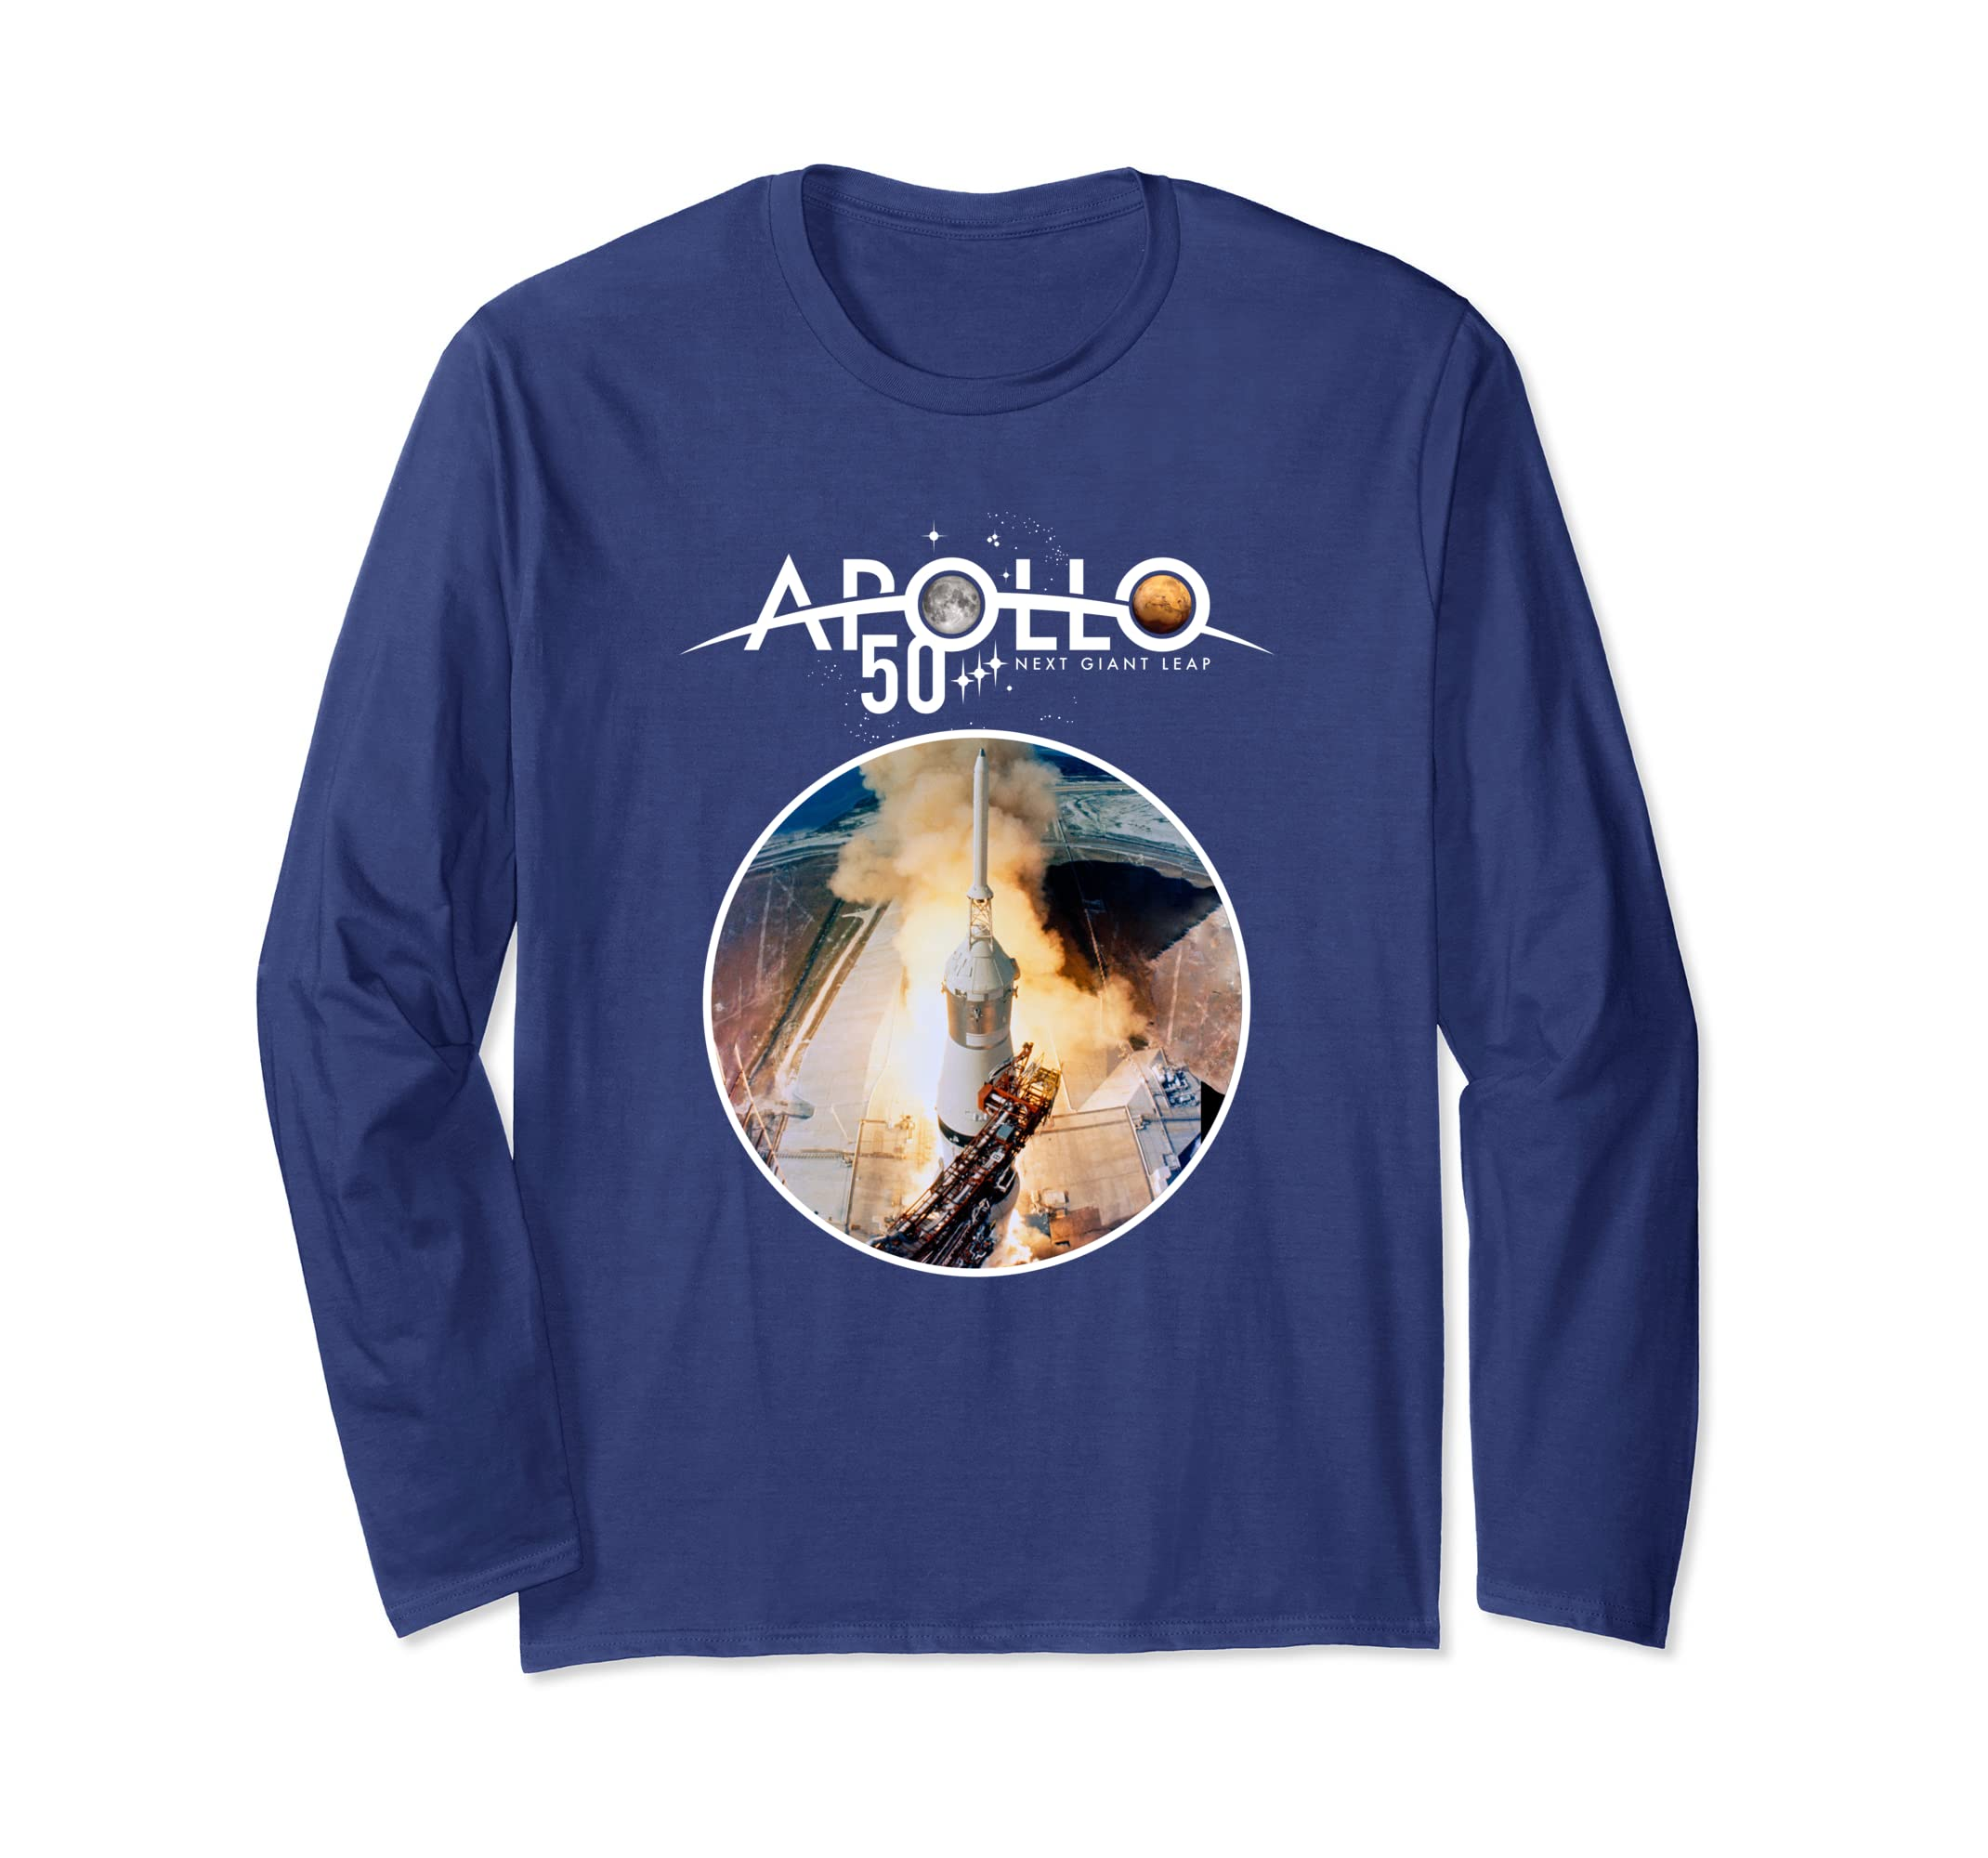 992a169a8851 Amazon.com: Apollo 50th NASA Launch Tower Icon Long Sleeve T-Shirt: Clothing